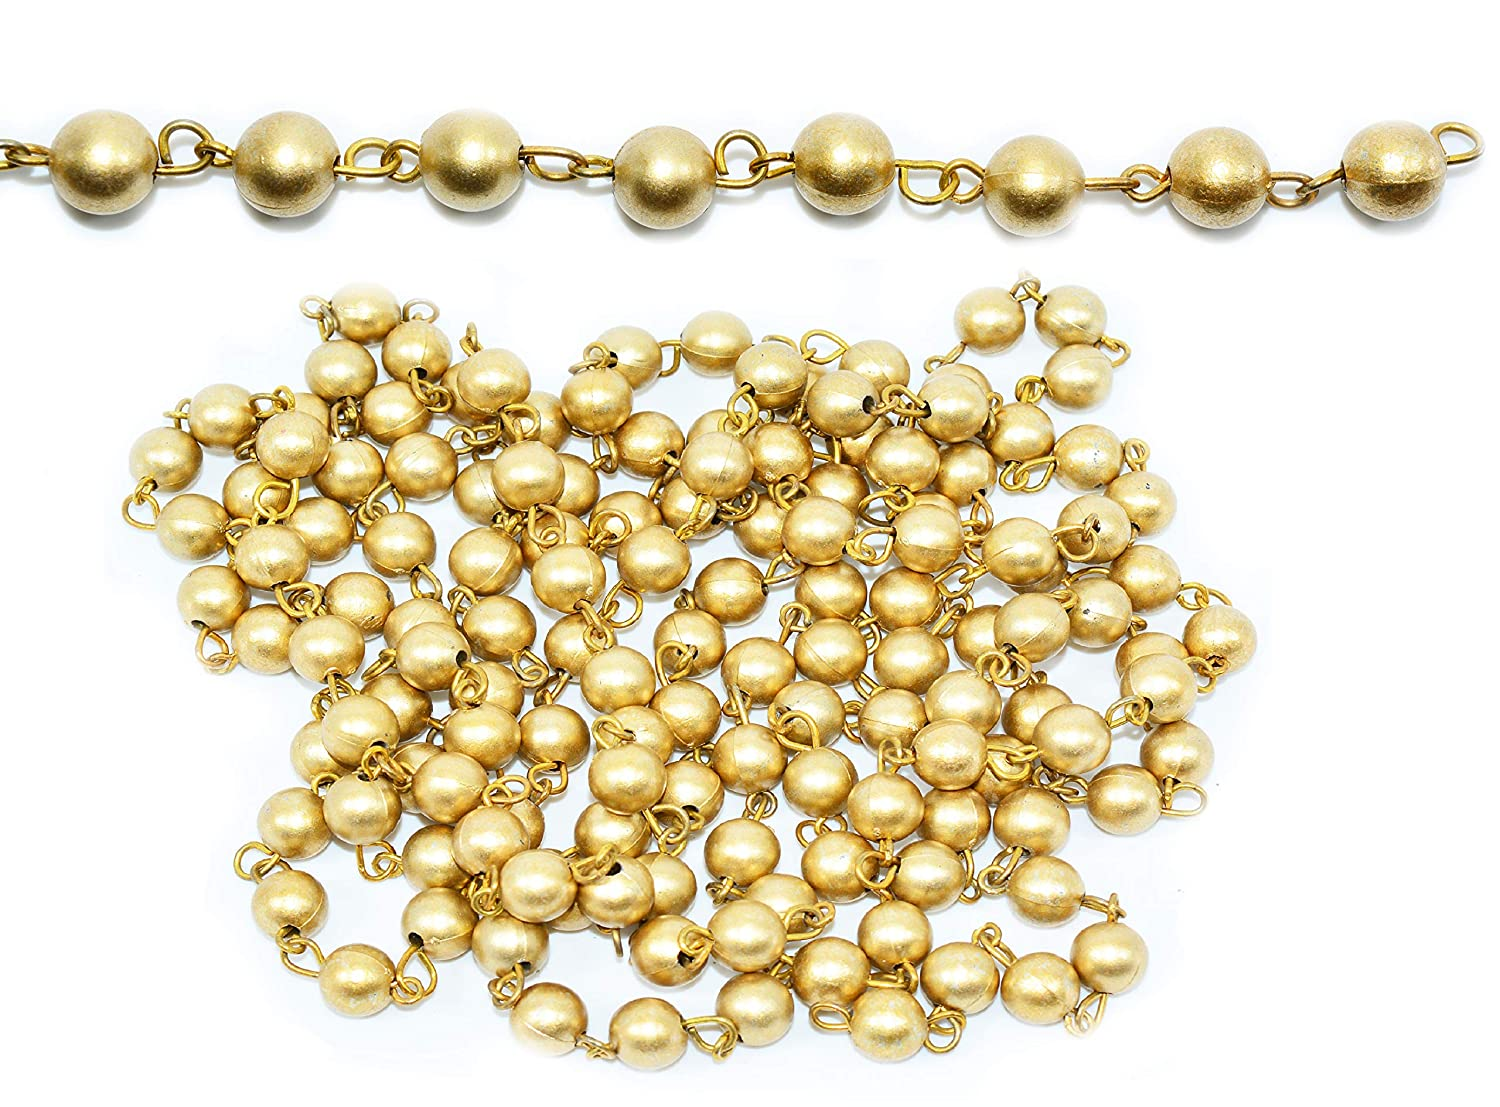 Goelx 5 Mtr Rosary Pearl Link Chain Garland Bead Size 8mm For